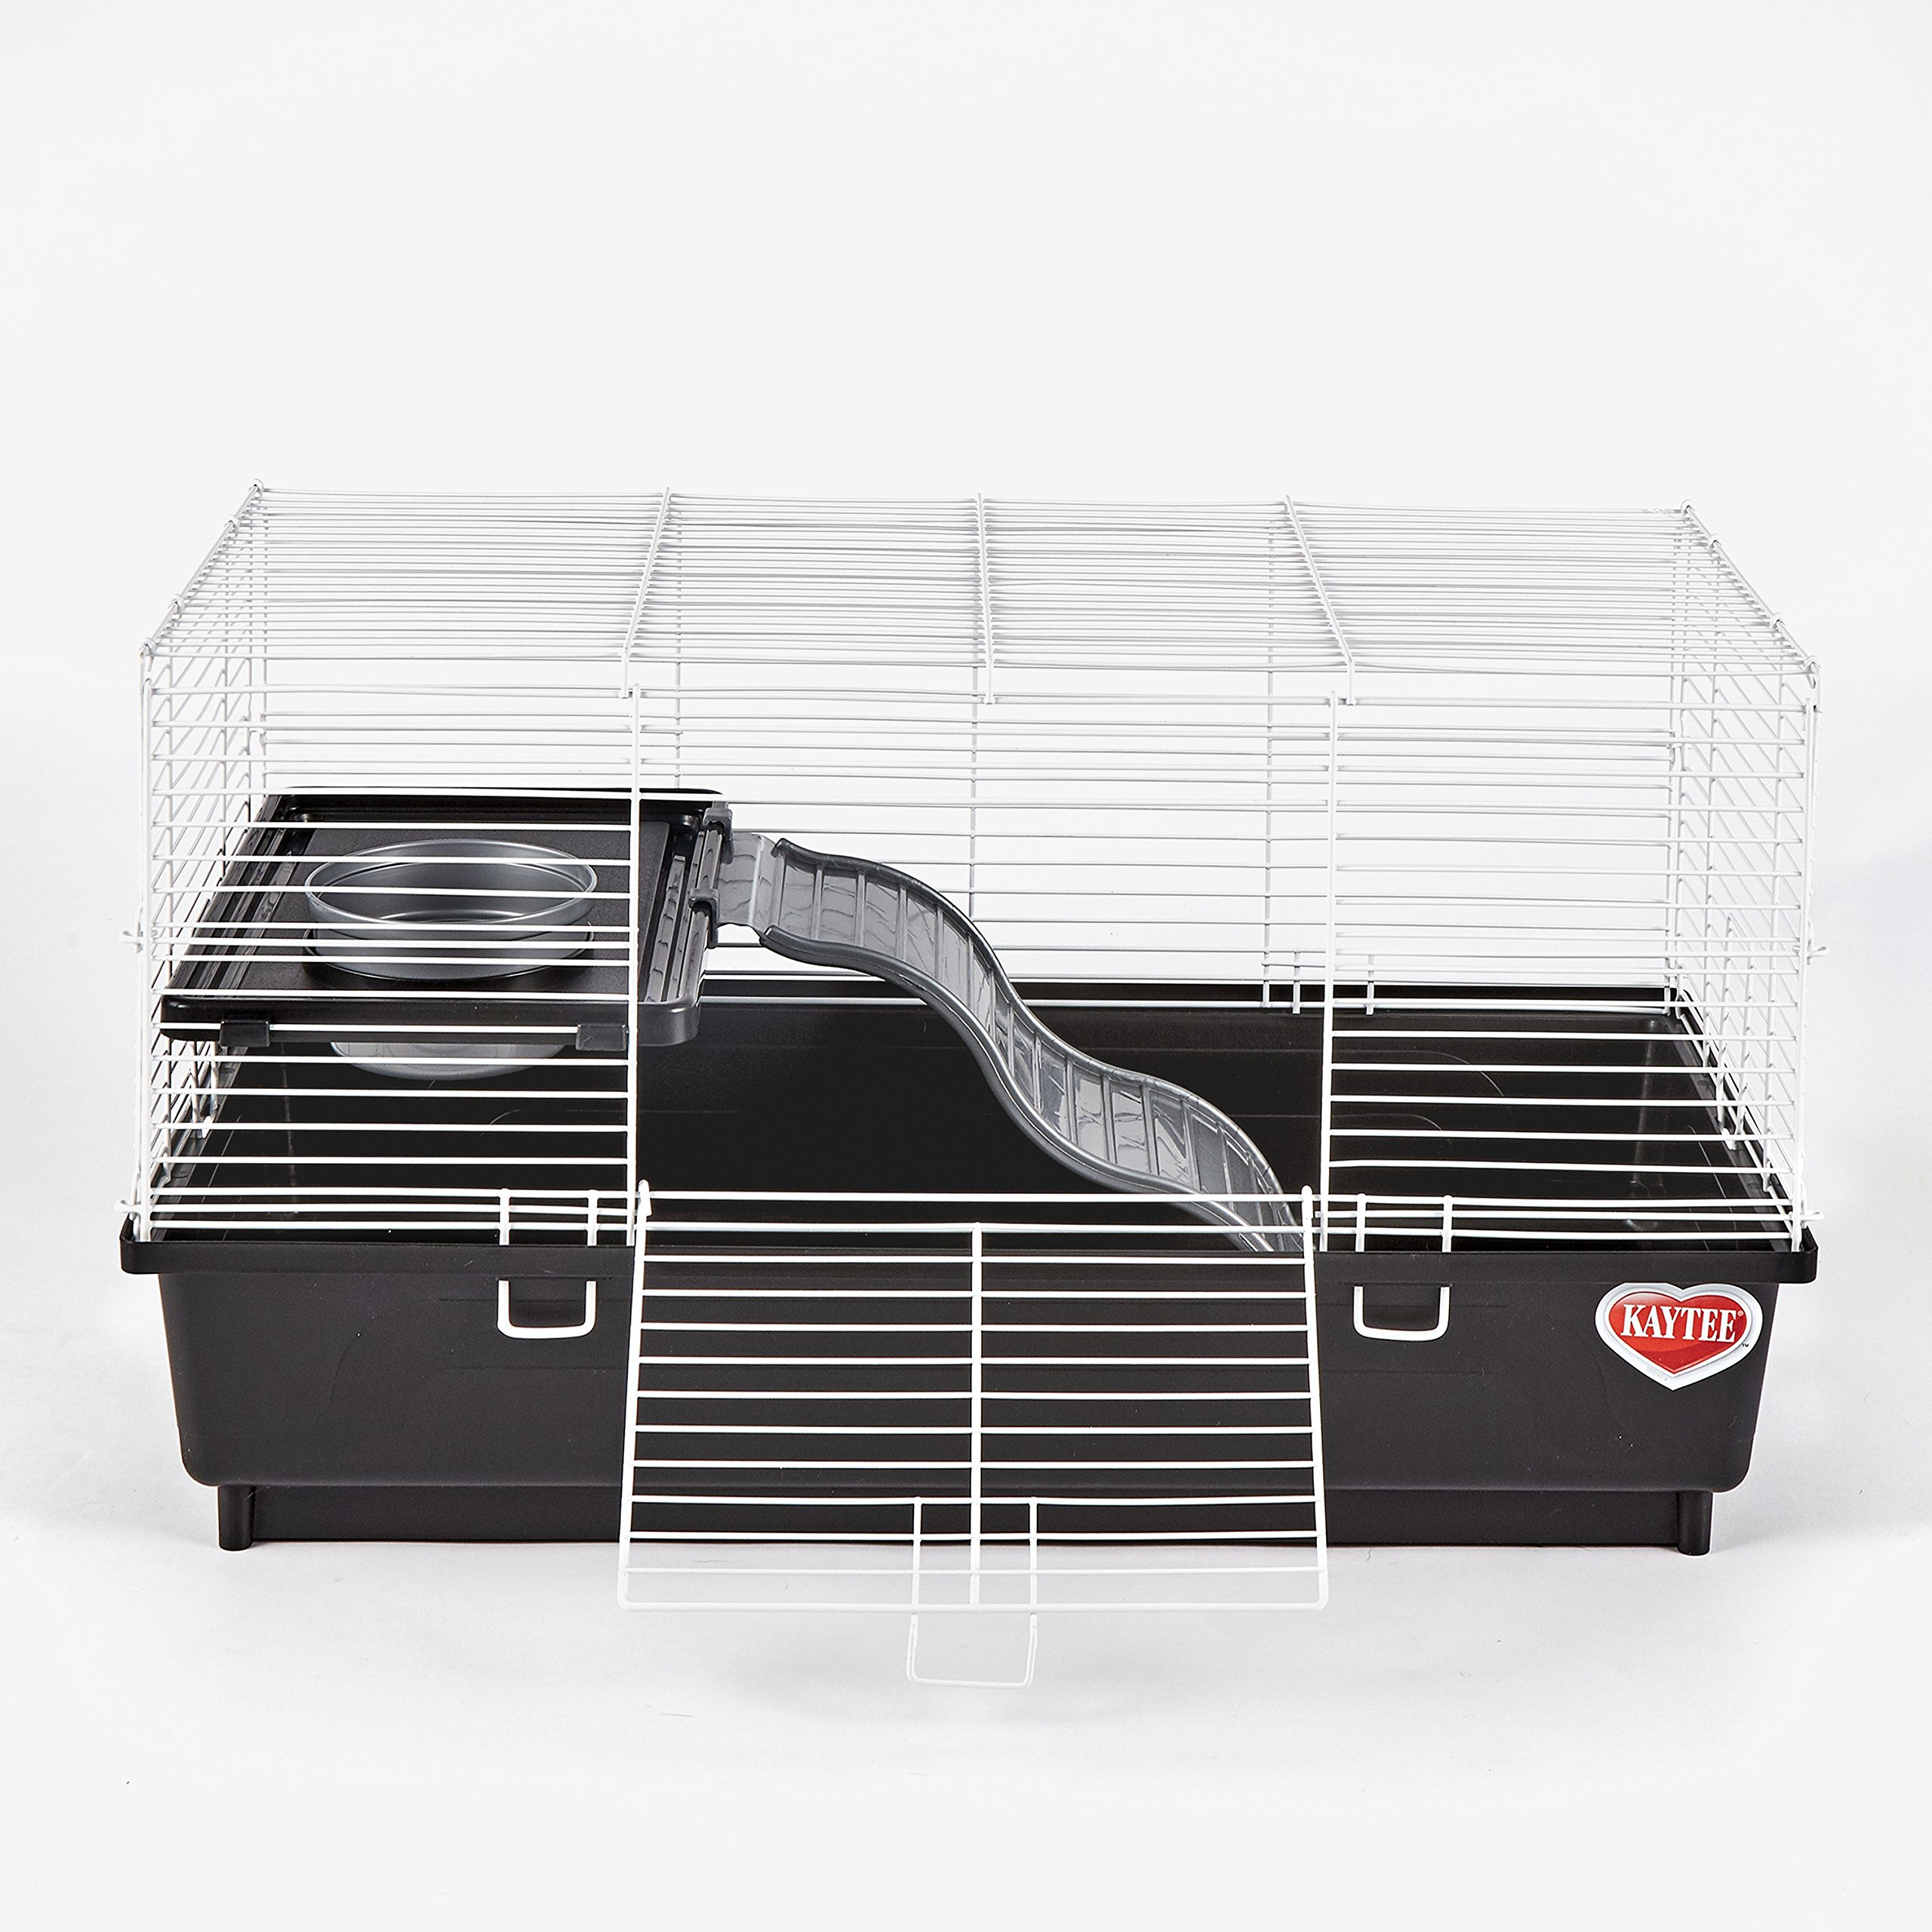 Kaytee My First Home Habitat for Pet Rat, 24 by 12-Inch